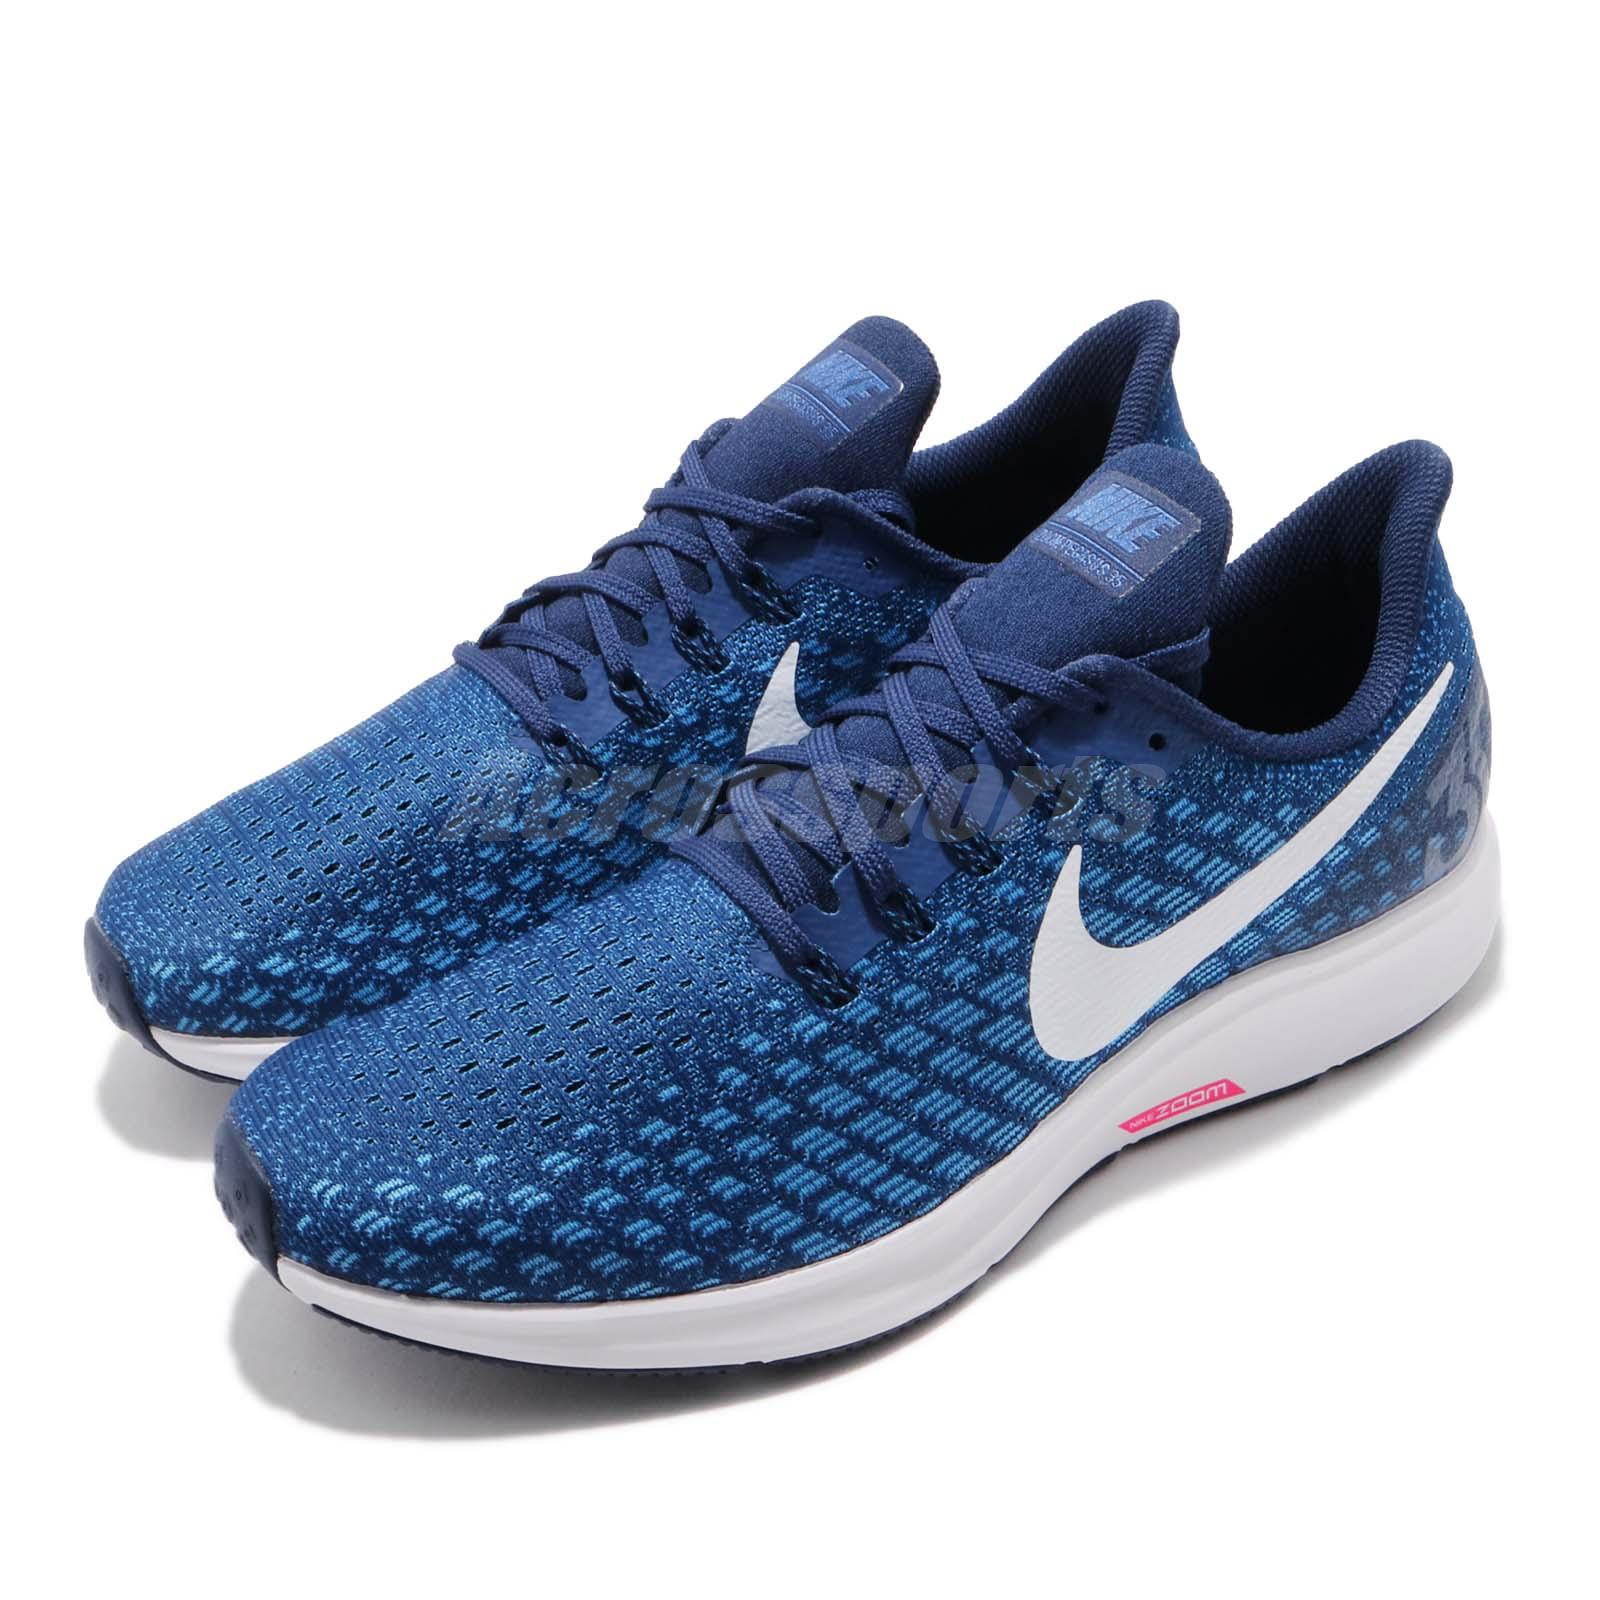 Air Force Men Shoes White Indigo Nike 35 Pegasus Zoom Running Blue OPiuXZk